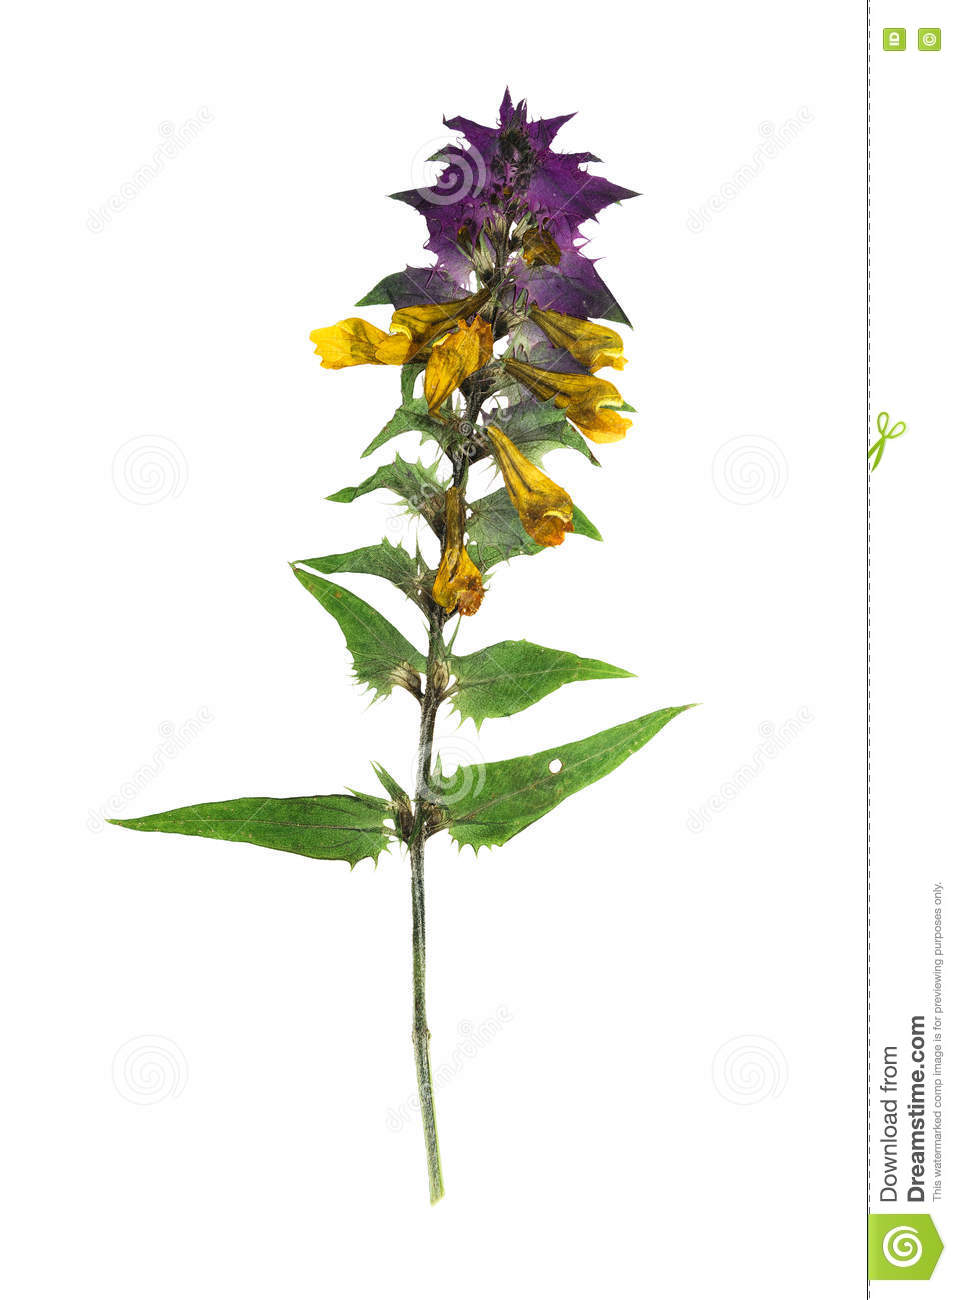 How to scrapbook dried flowers - Pressed And Dried Flowers Melampyrum Nemorosum Isolated